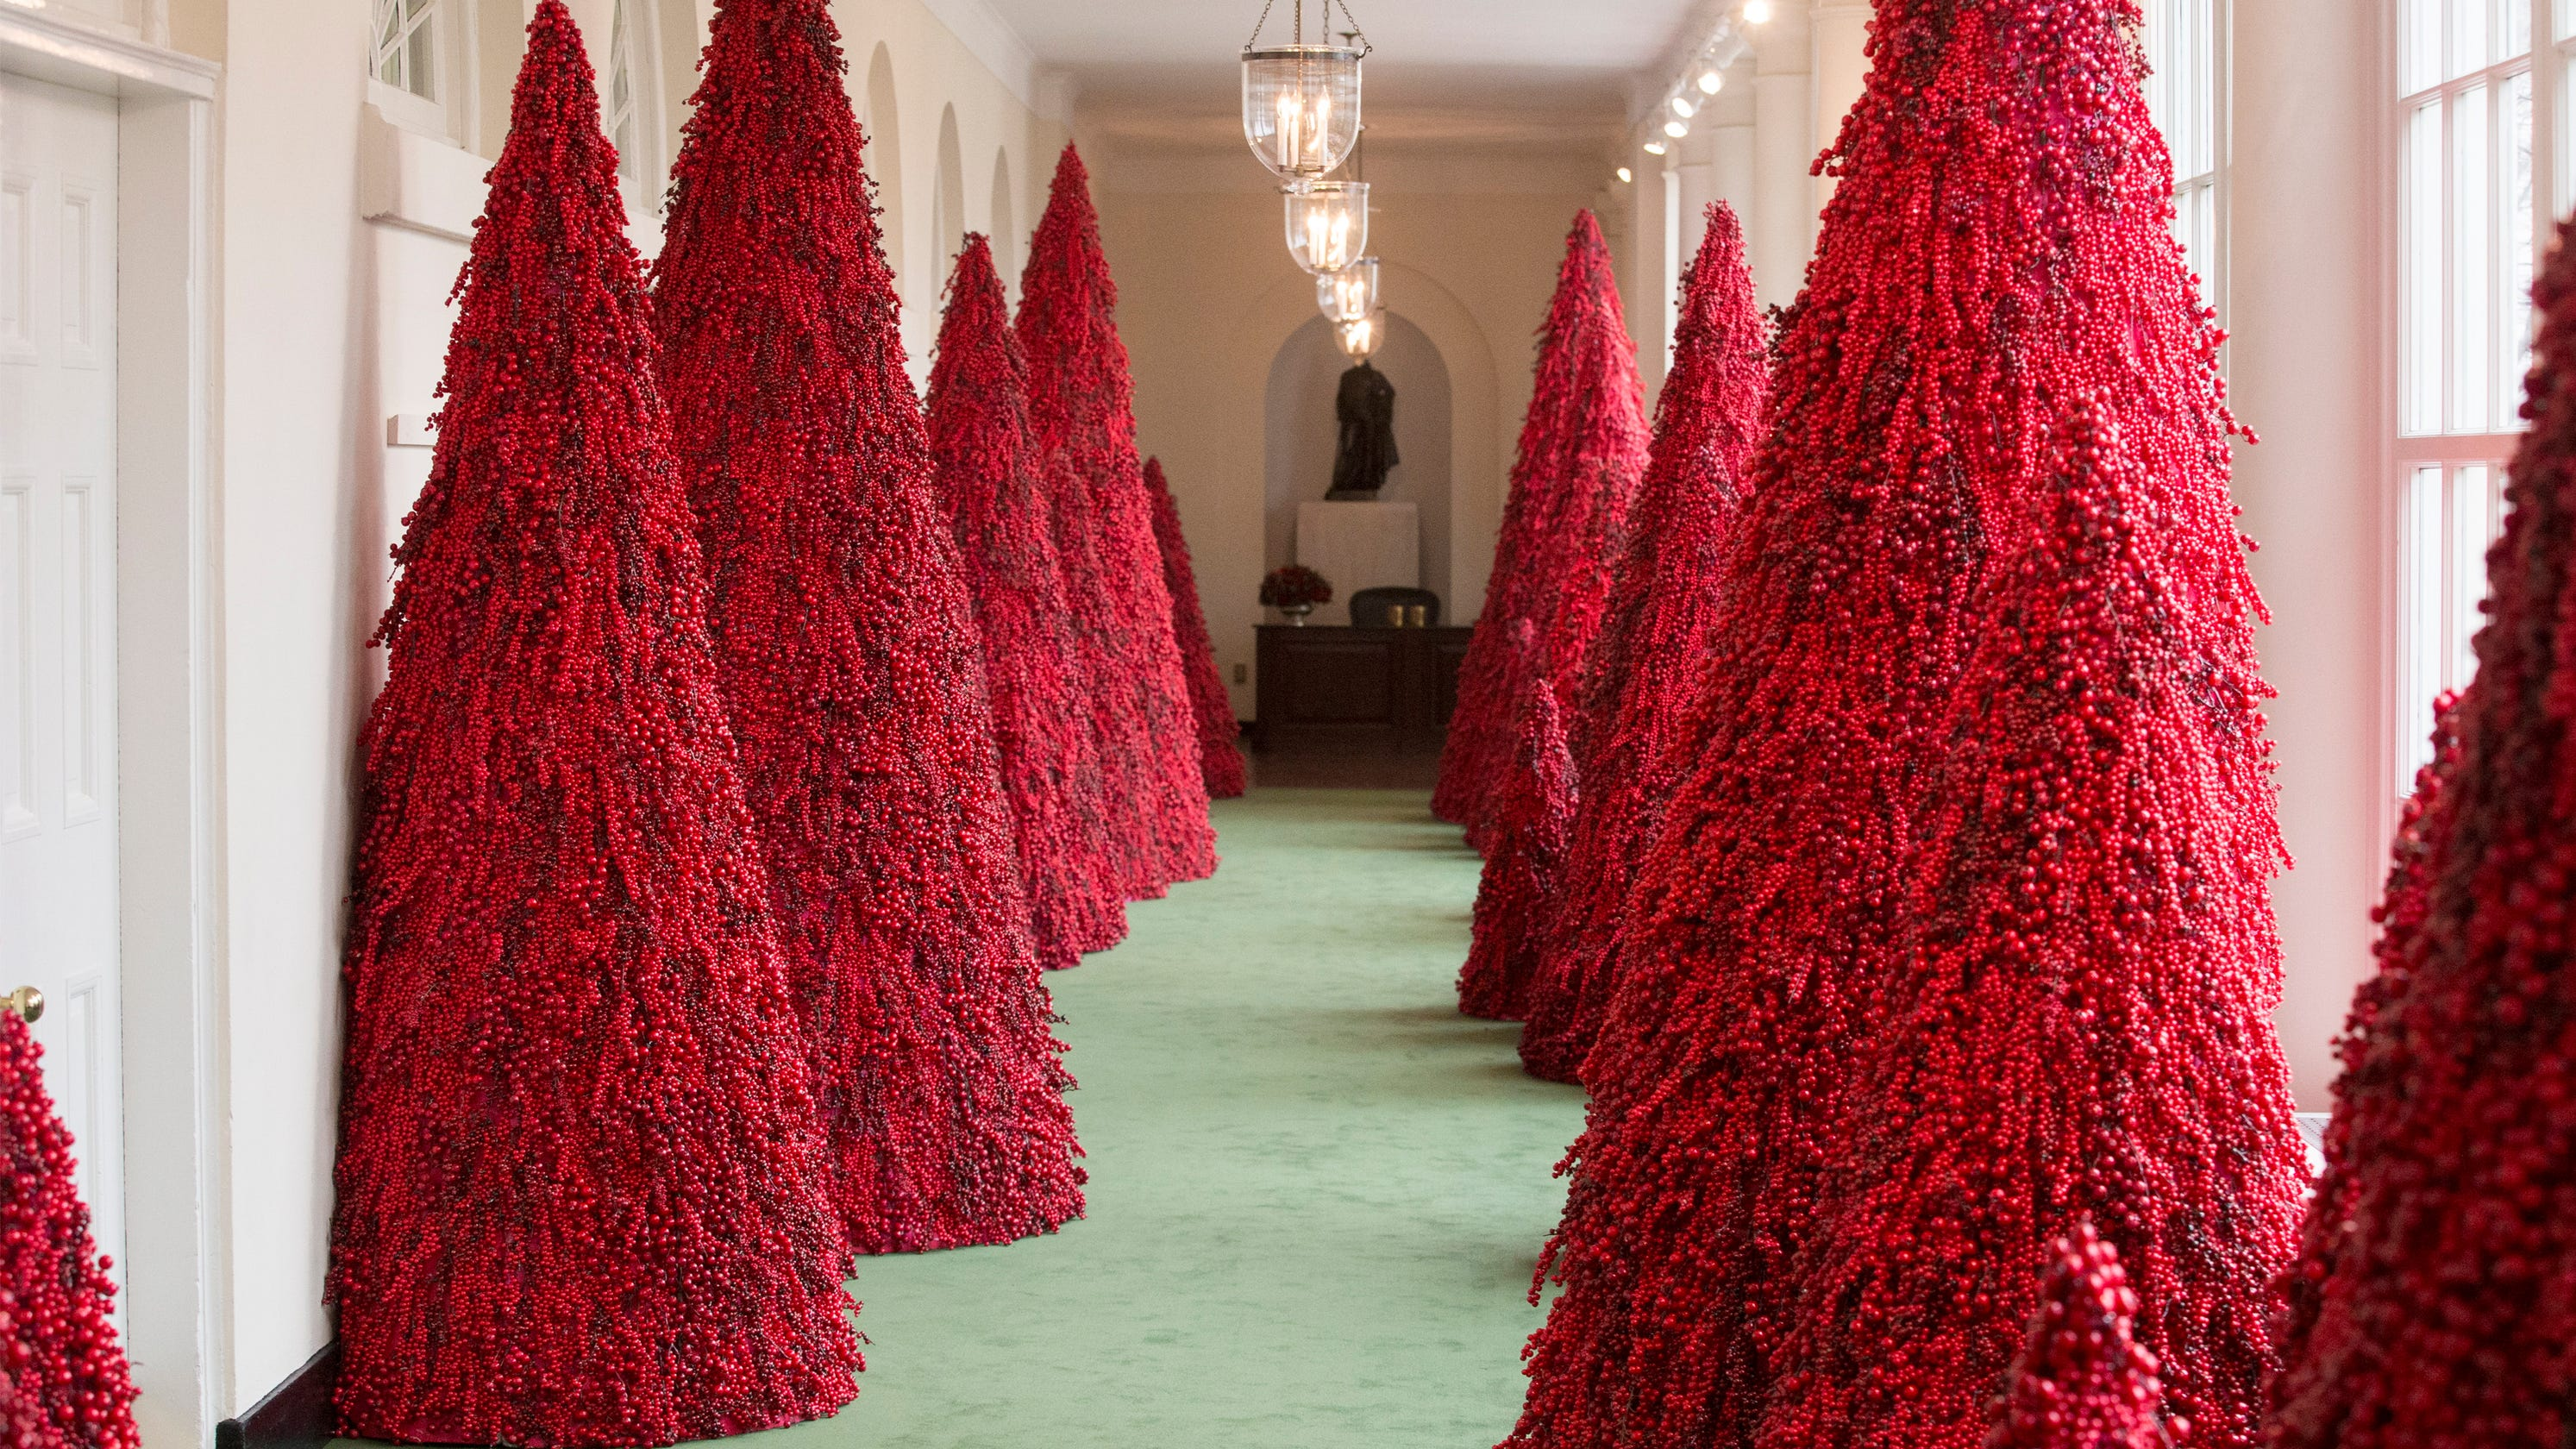 Melania Trump's Controversial Red Trees A Hit At Christmas